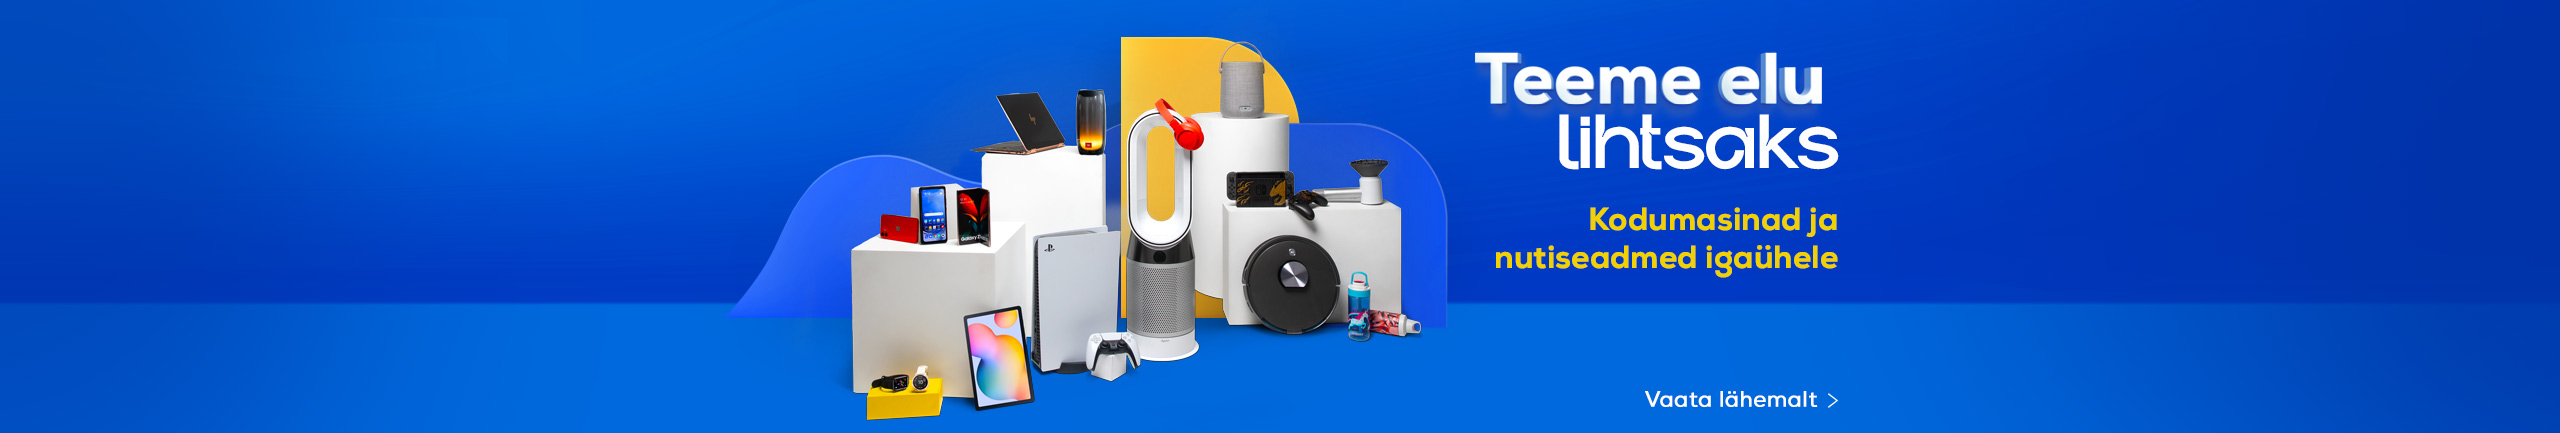 FPS We make life easy! Home appliances and smart devices for everyone